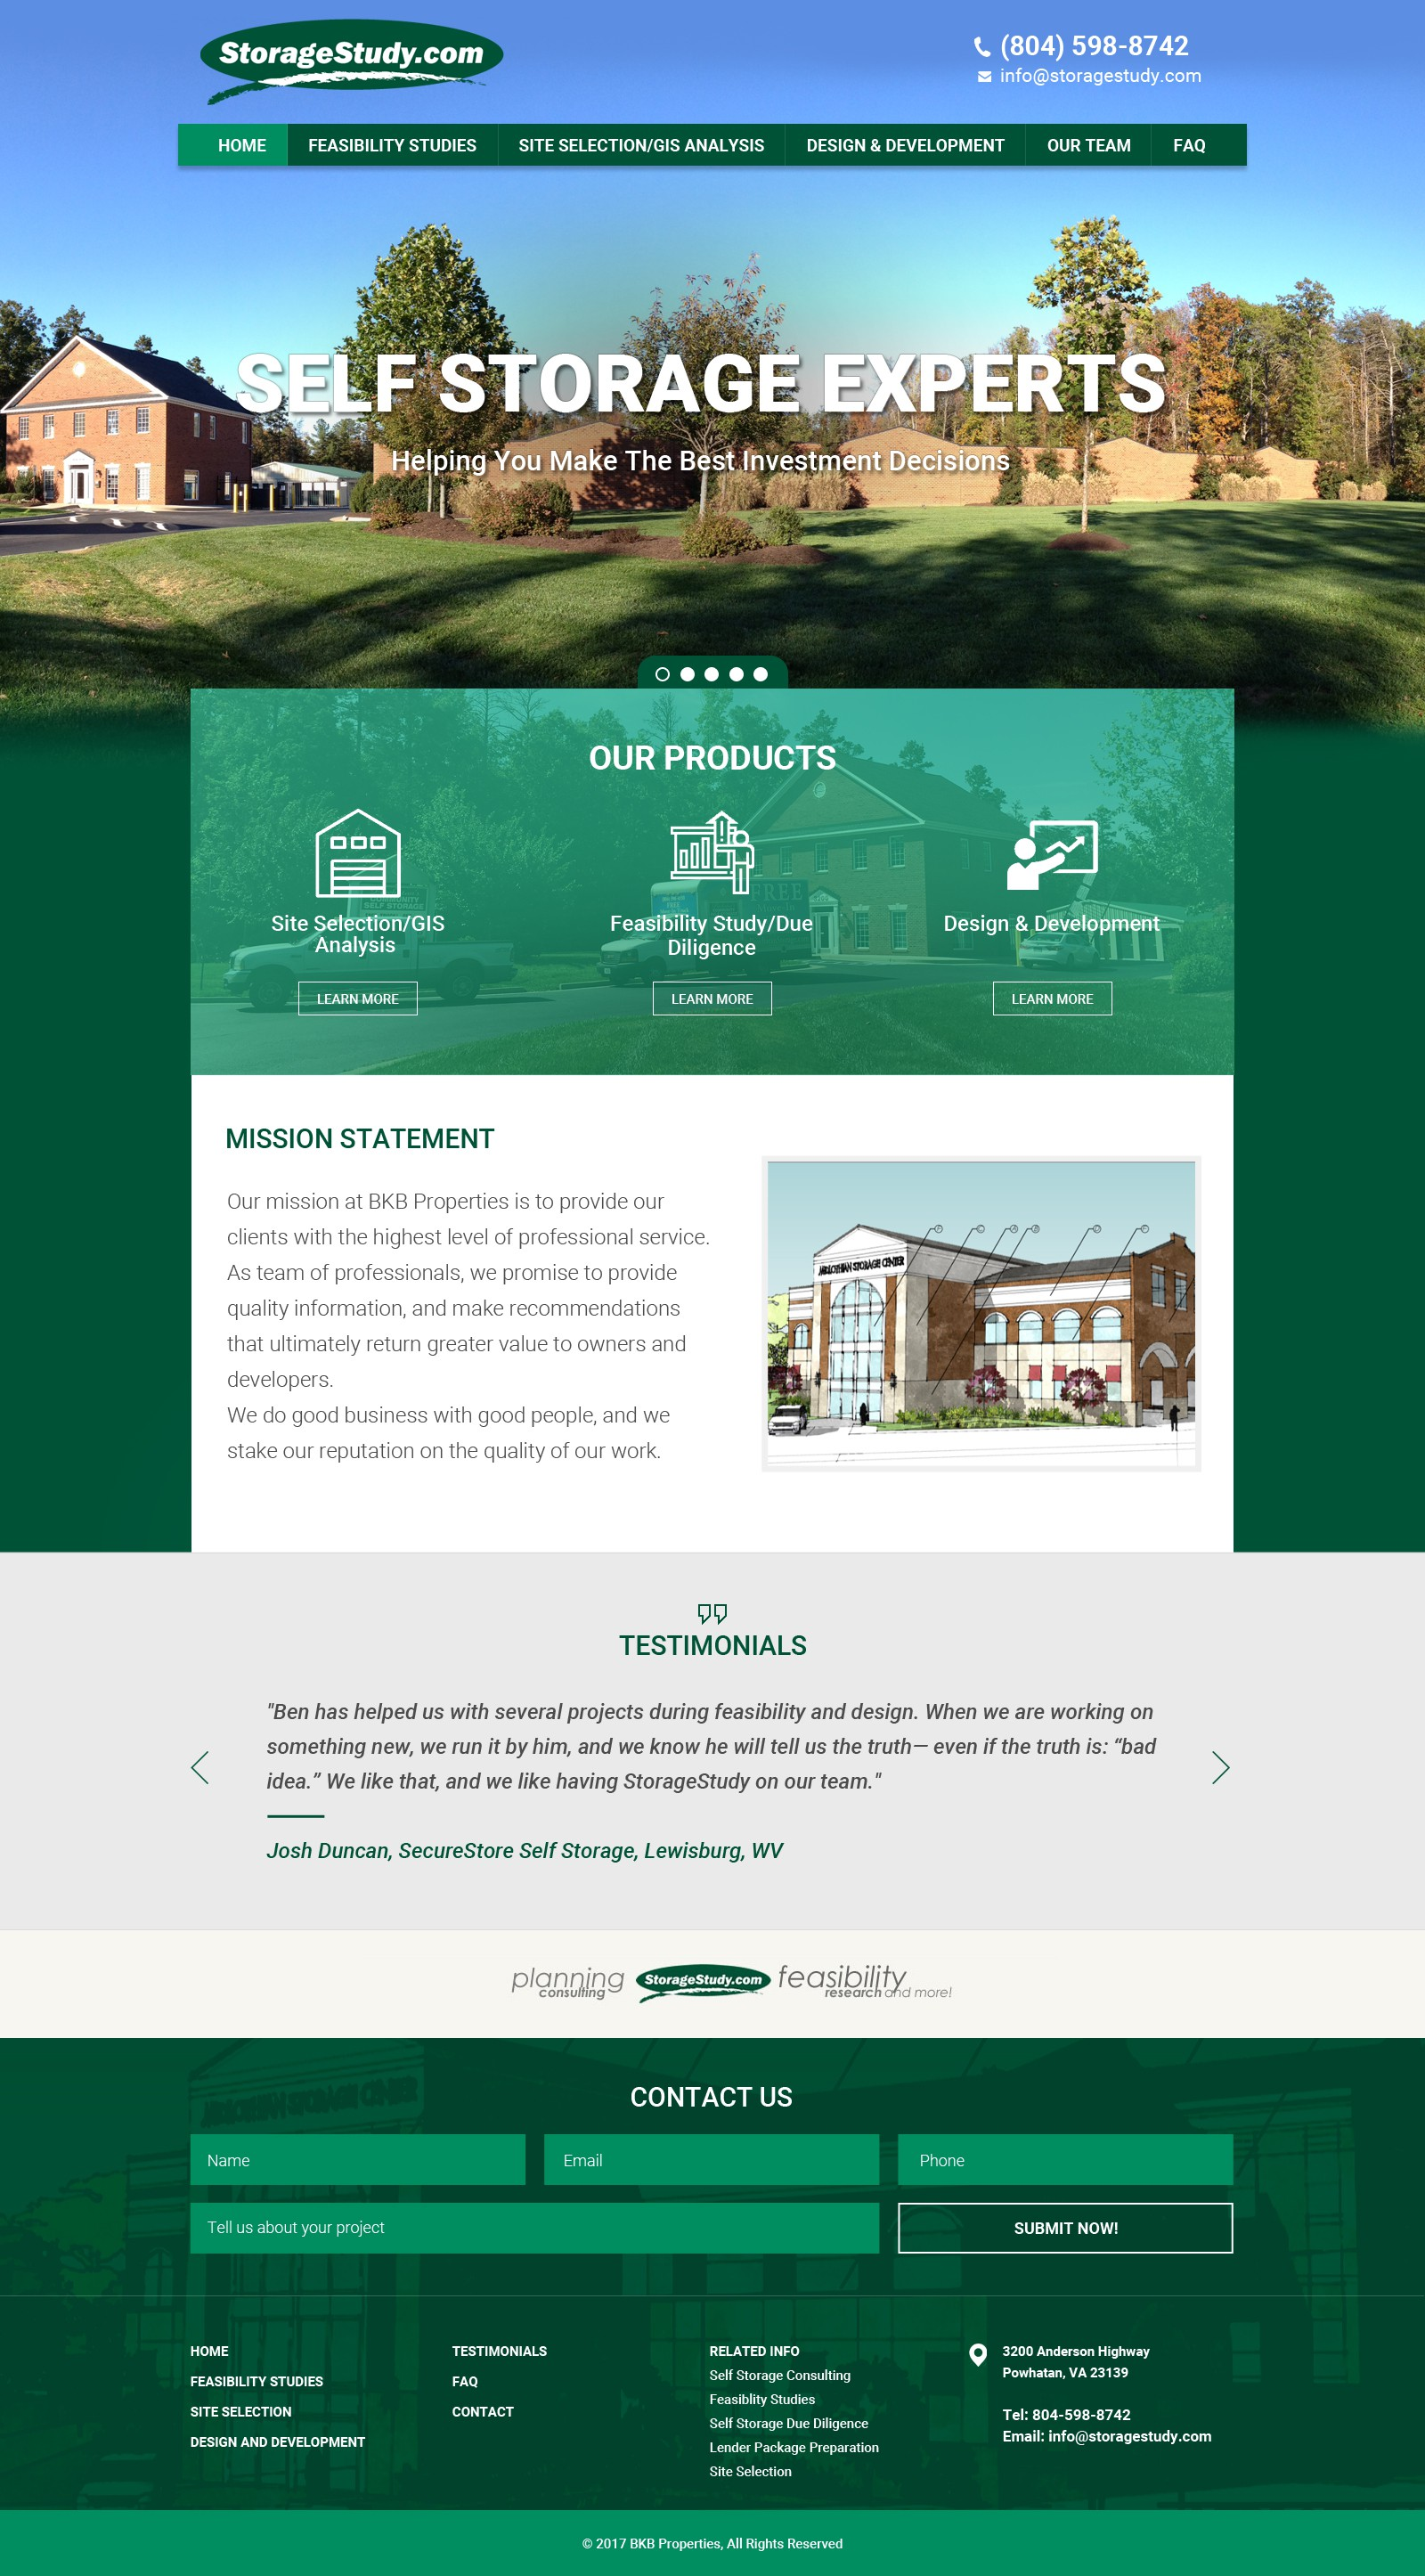 Consulting company needs modern website redesign